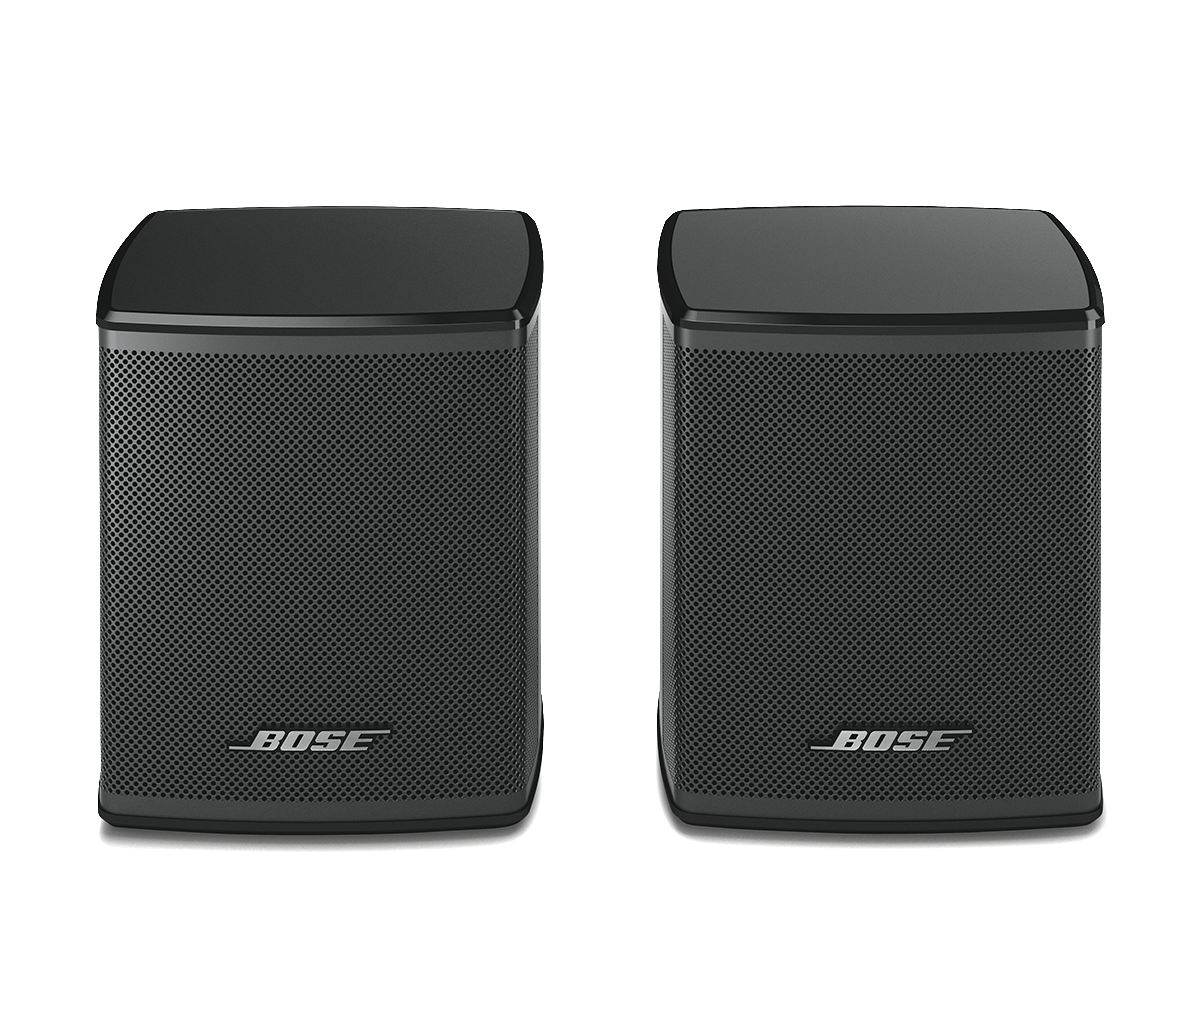 Bose_Surround_Speakers